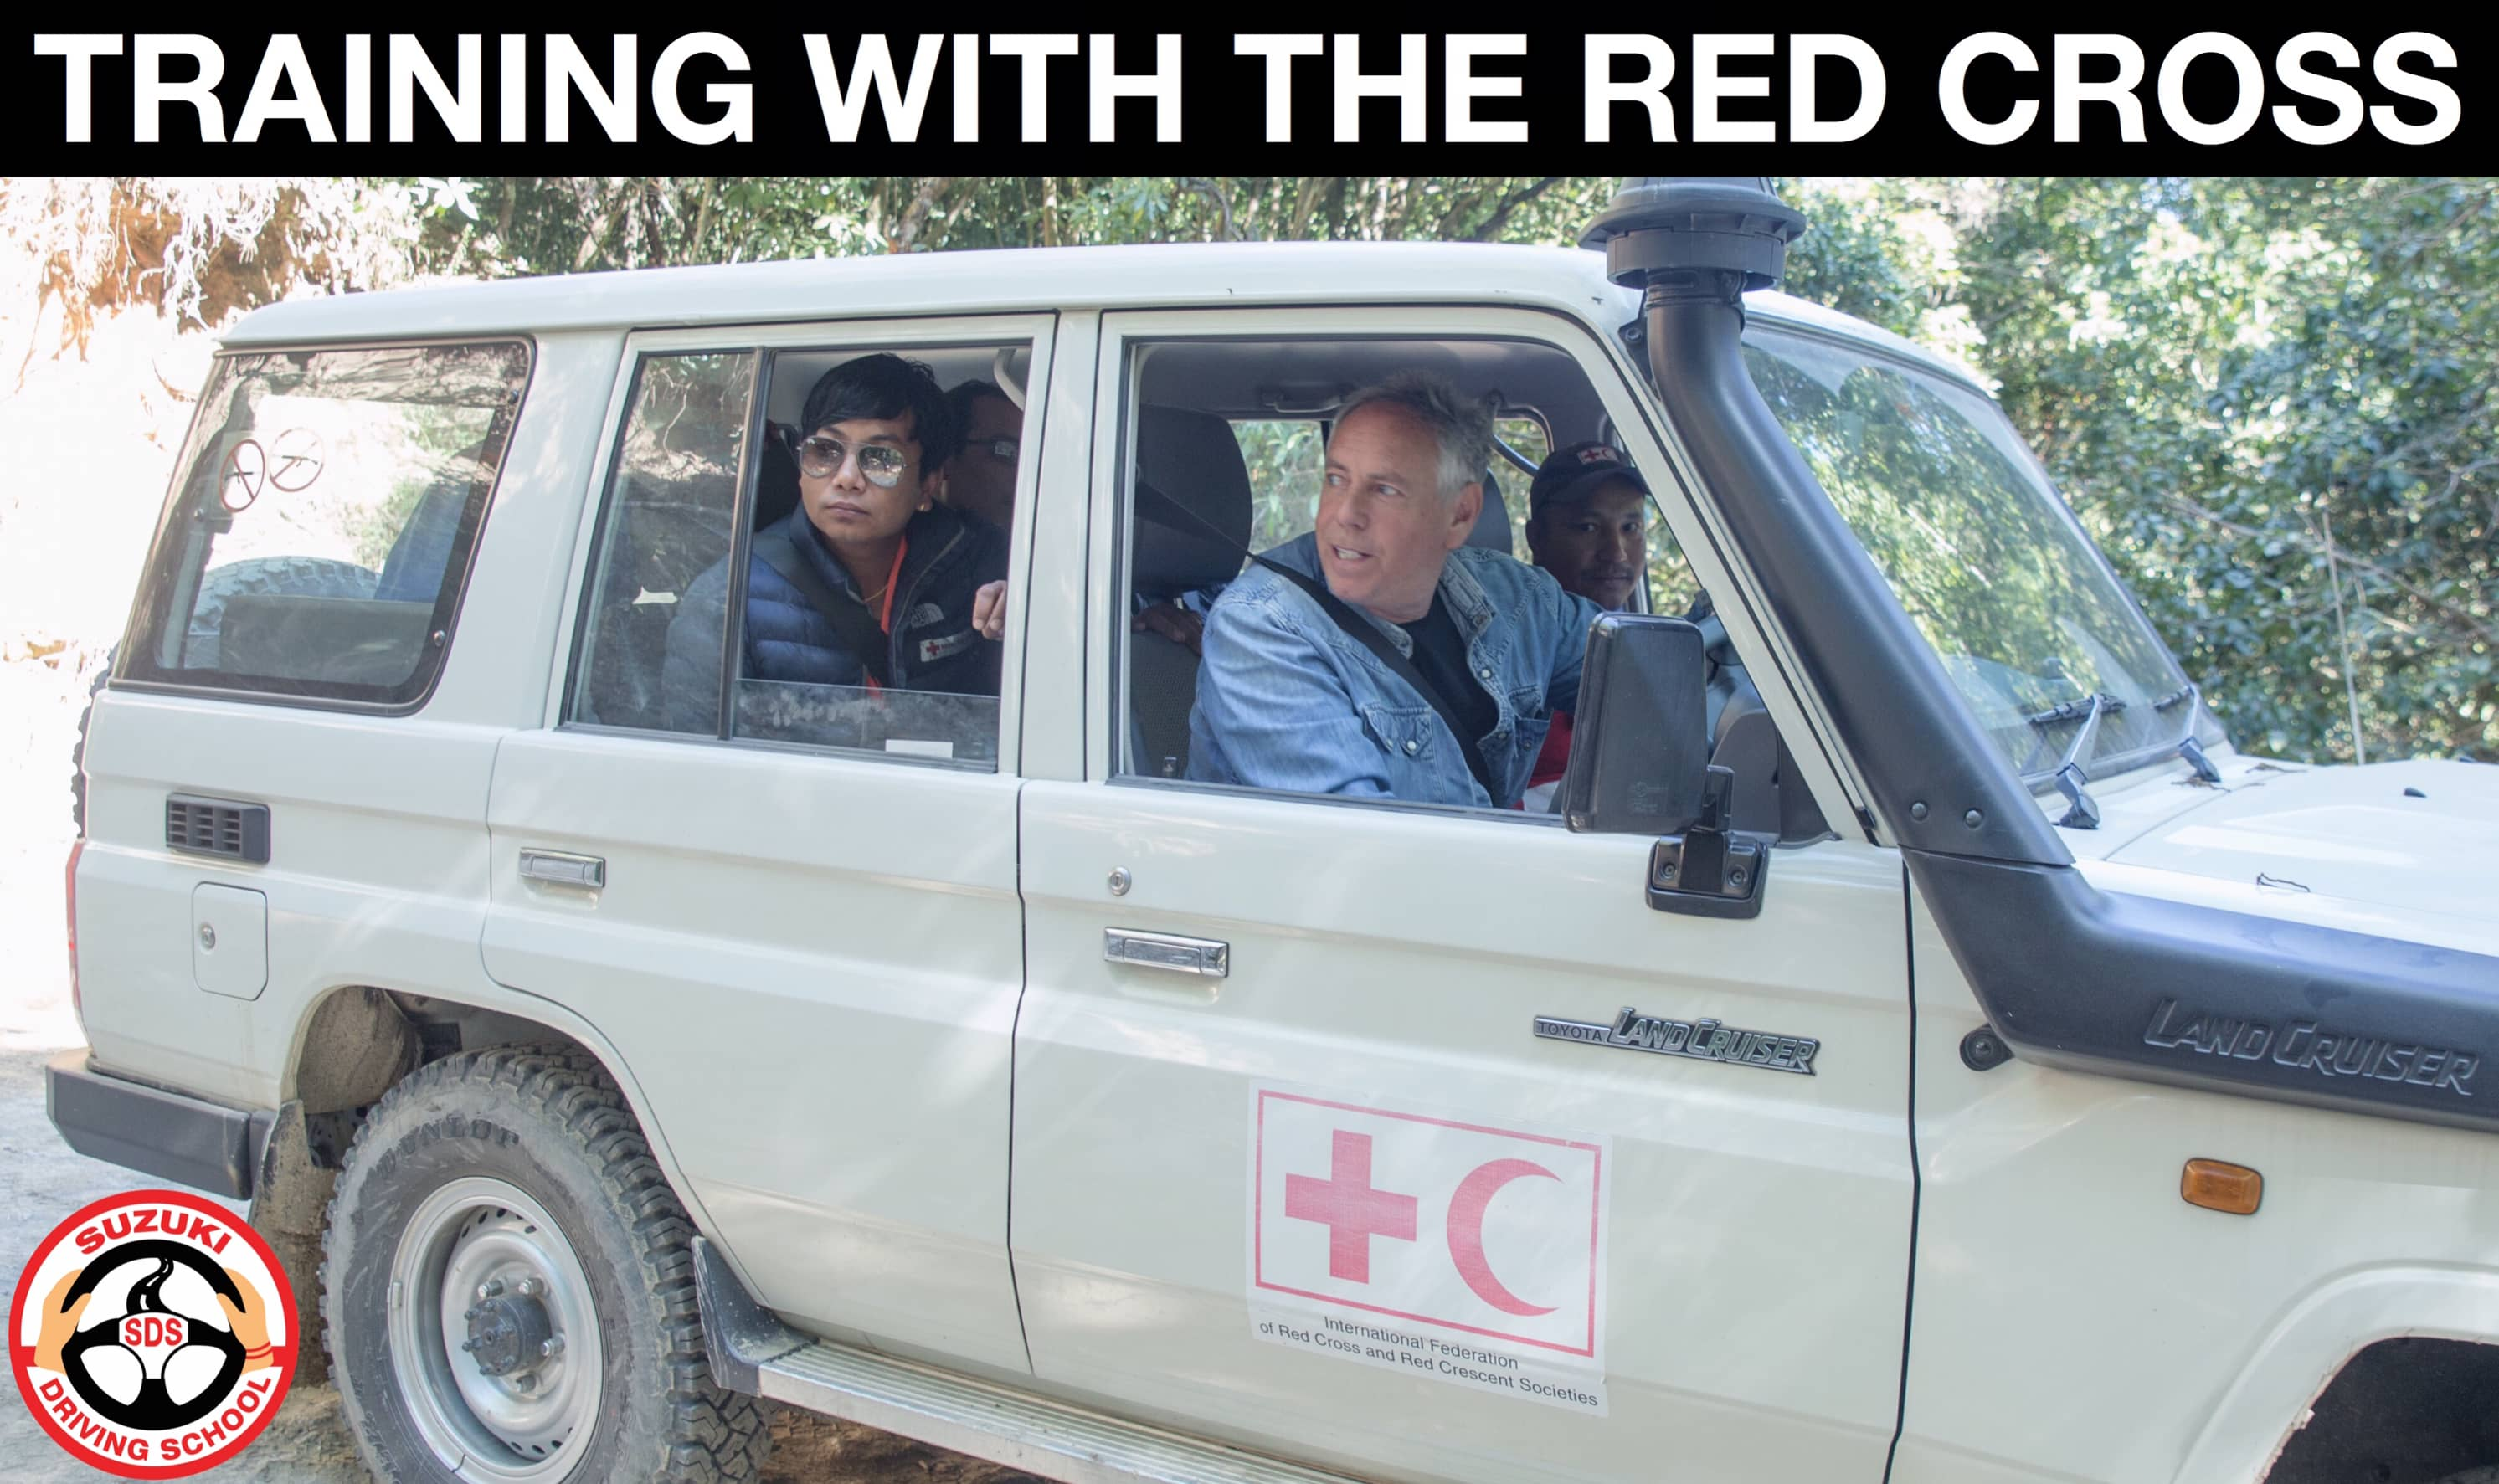 TRAINING WITH THE RED CROSS